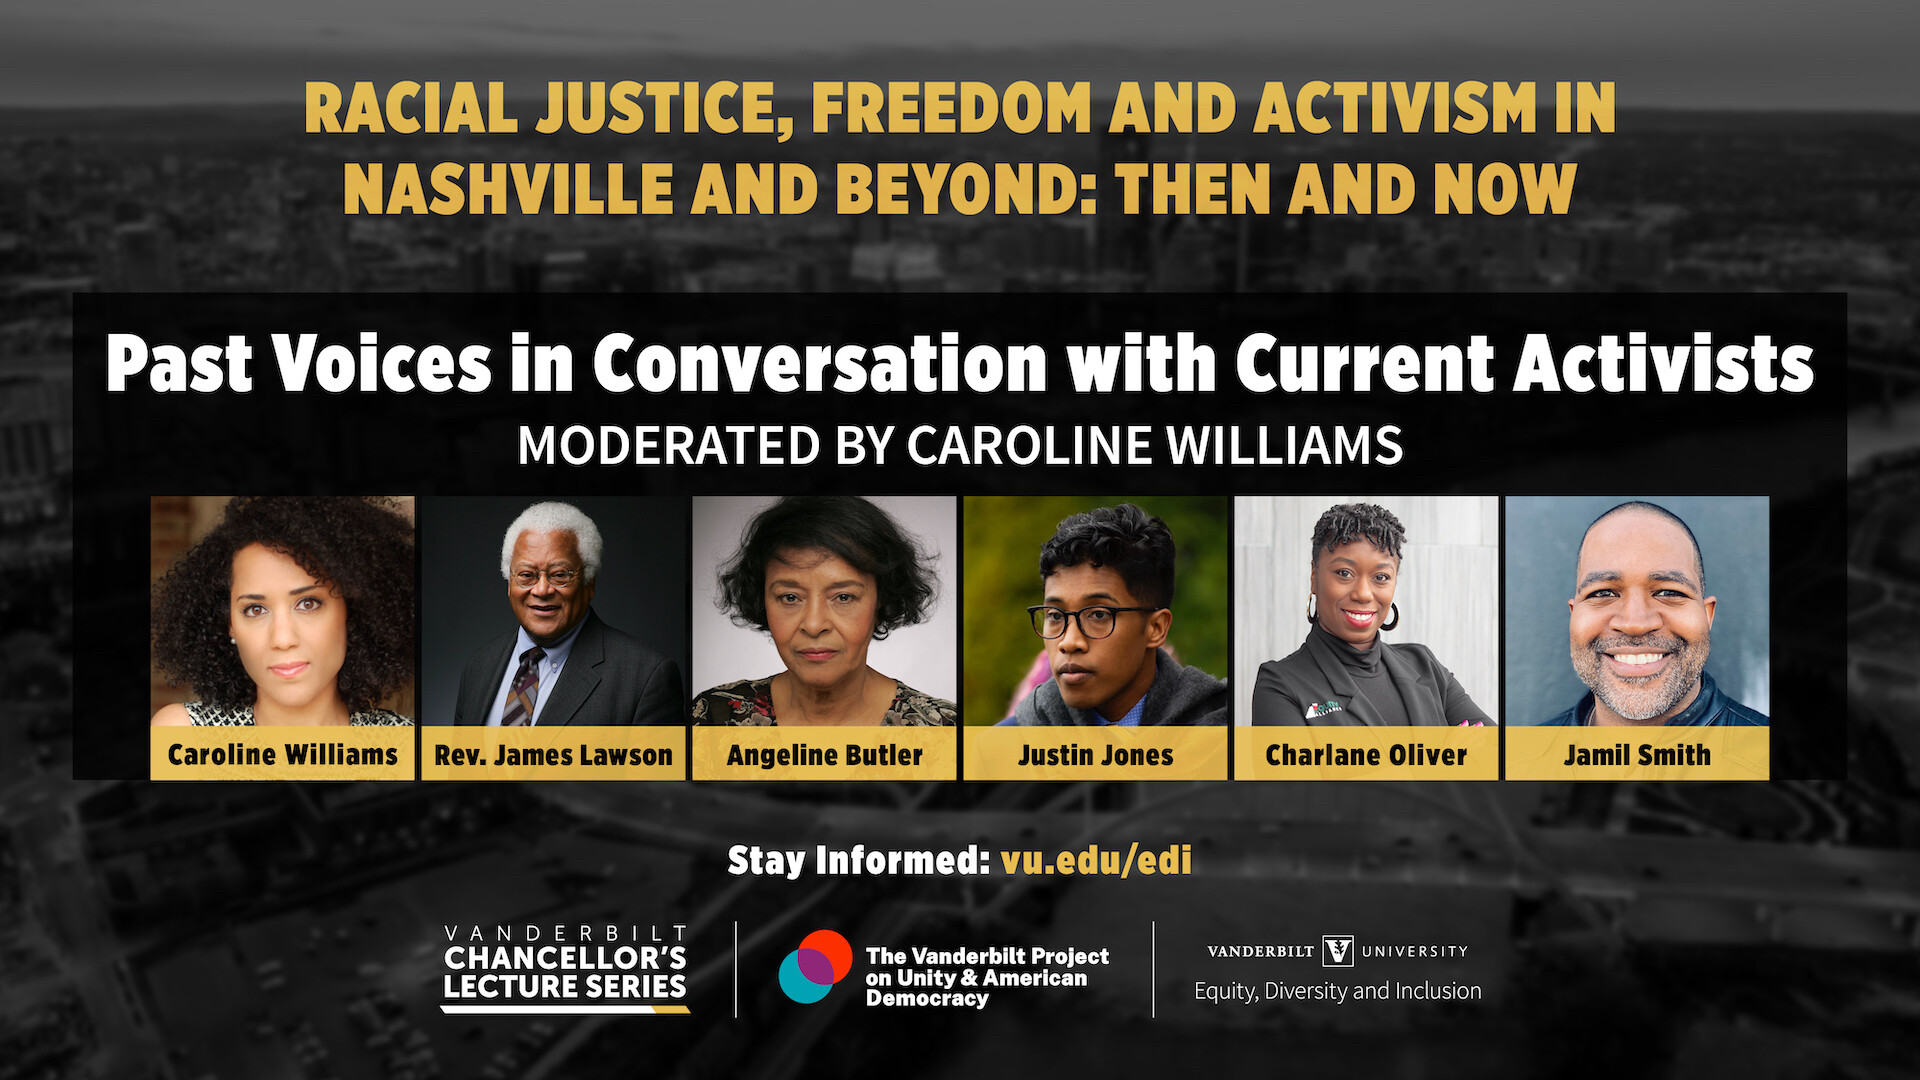 Watch:  Racial Justice, Freedom and Activism in Nashville and Beyond: Then and Now Symposium